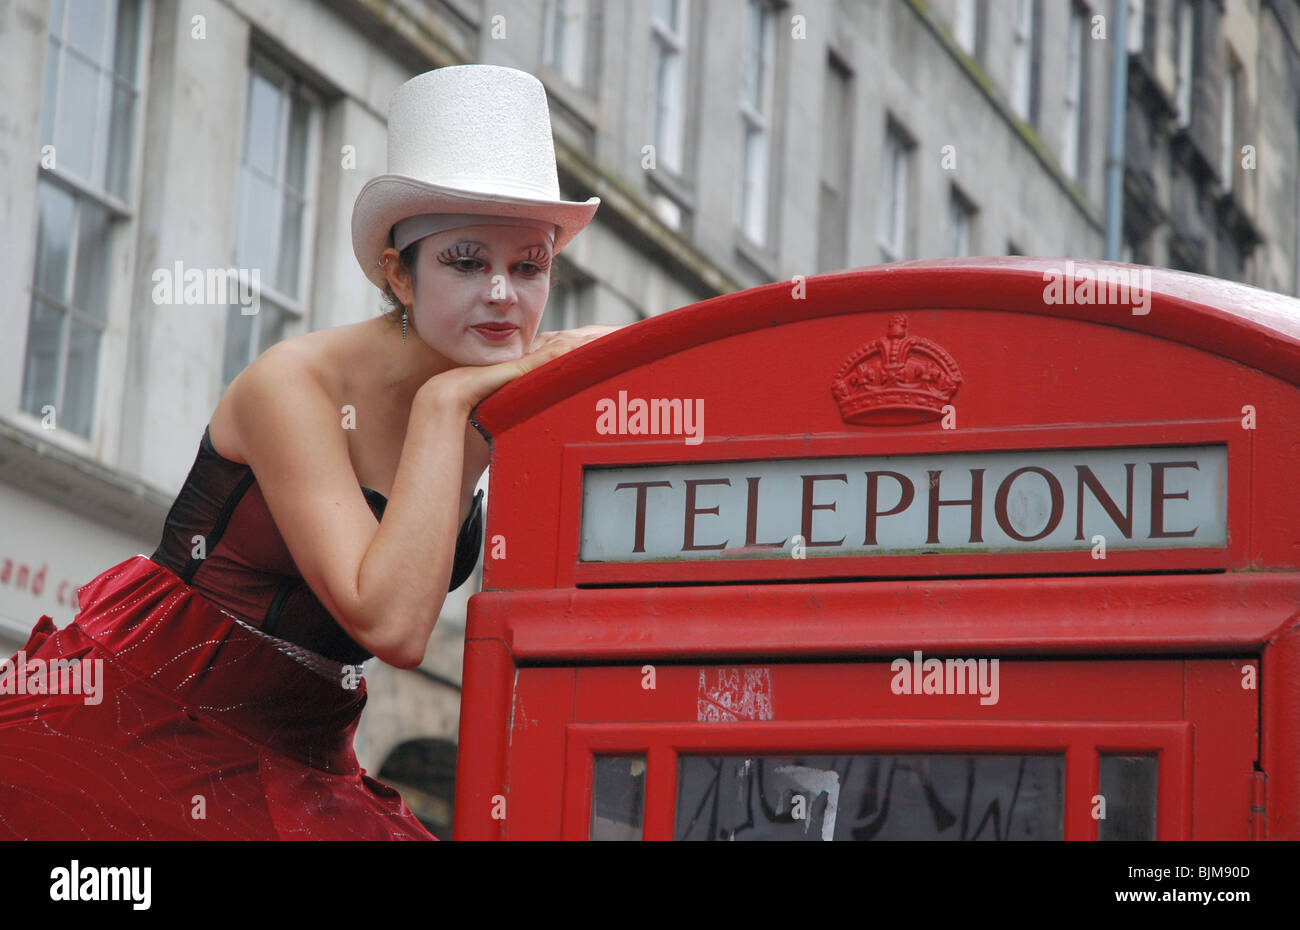 Performer on the Edinburgh Fringe Festival resting on a red telephone box on the High Street. - Stock Image